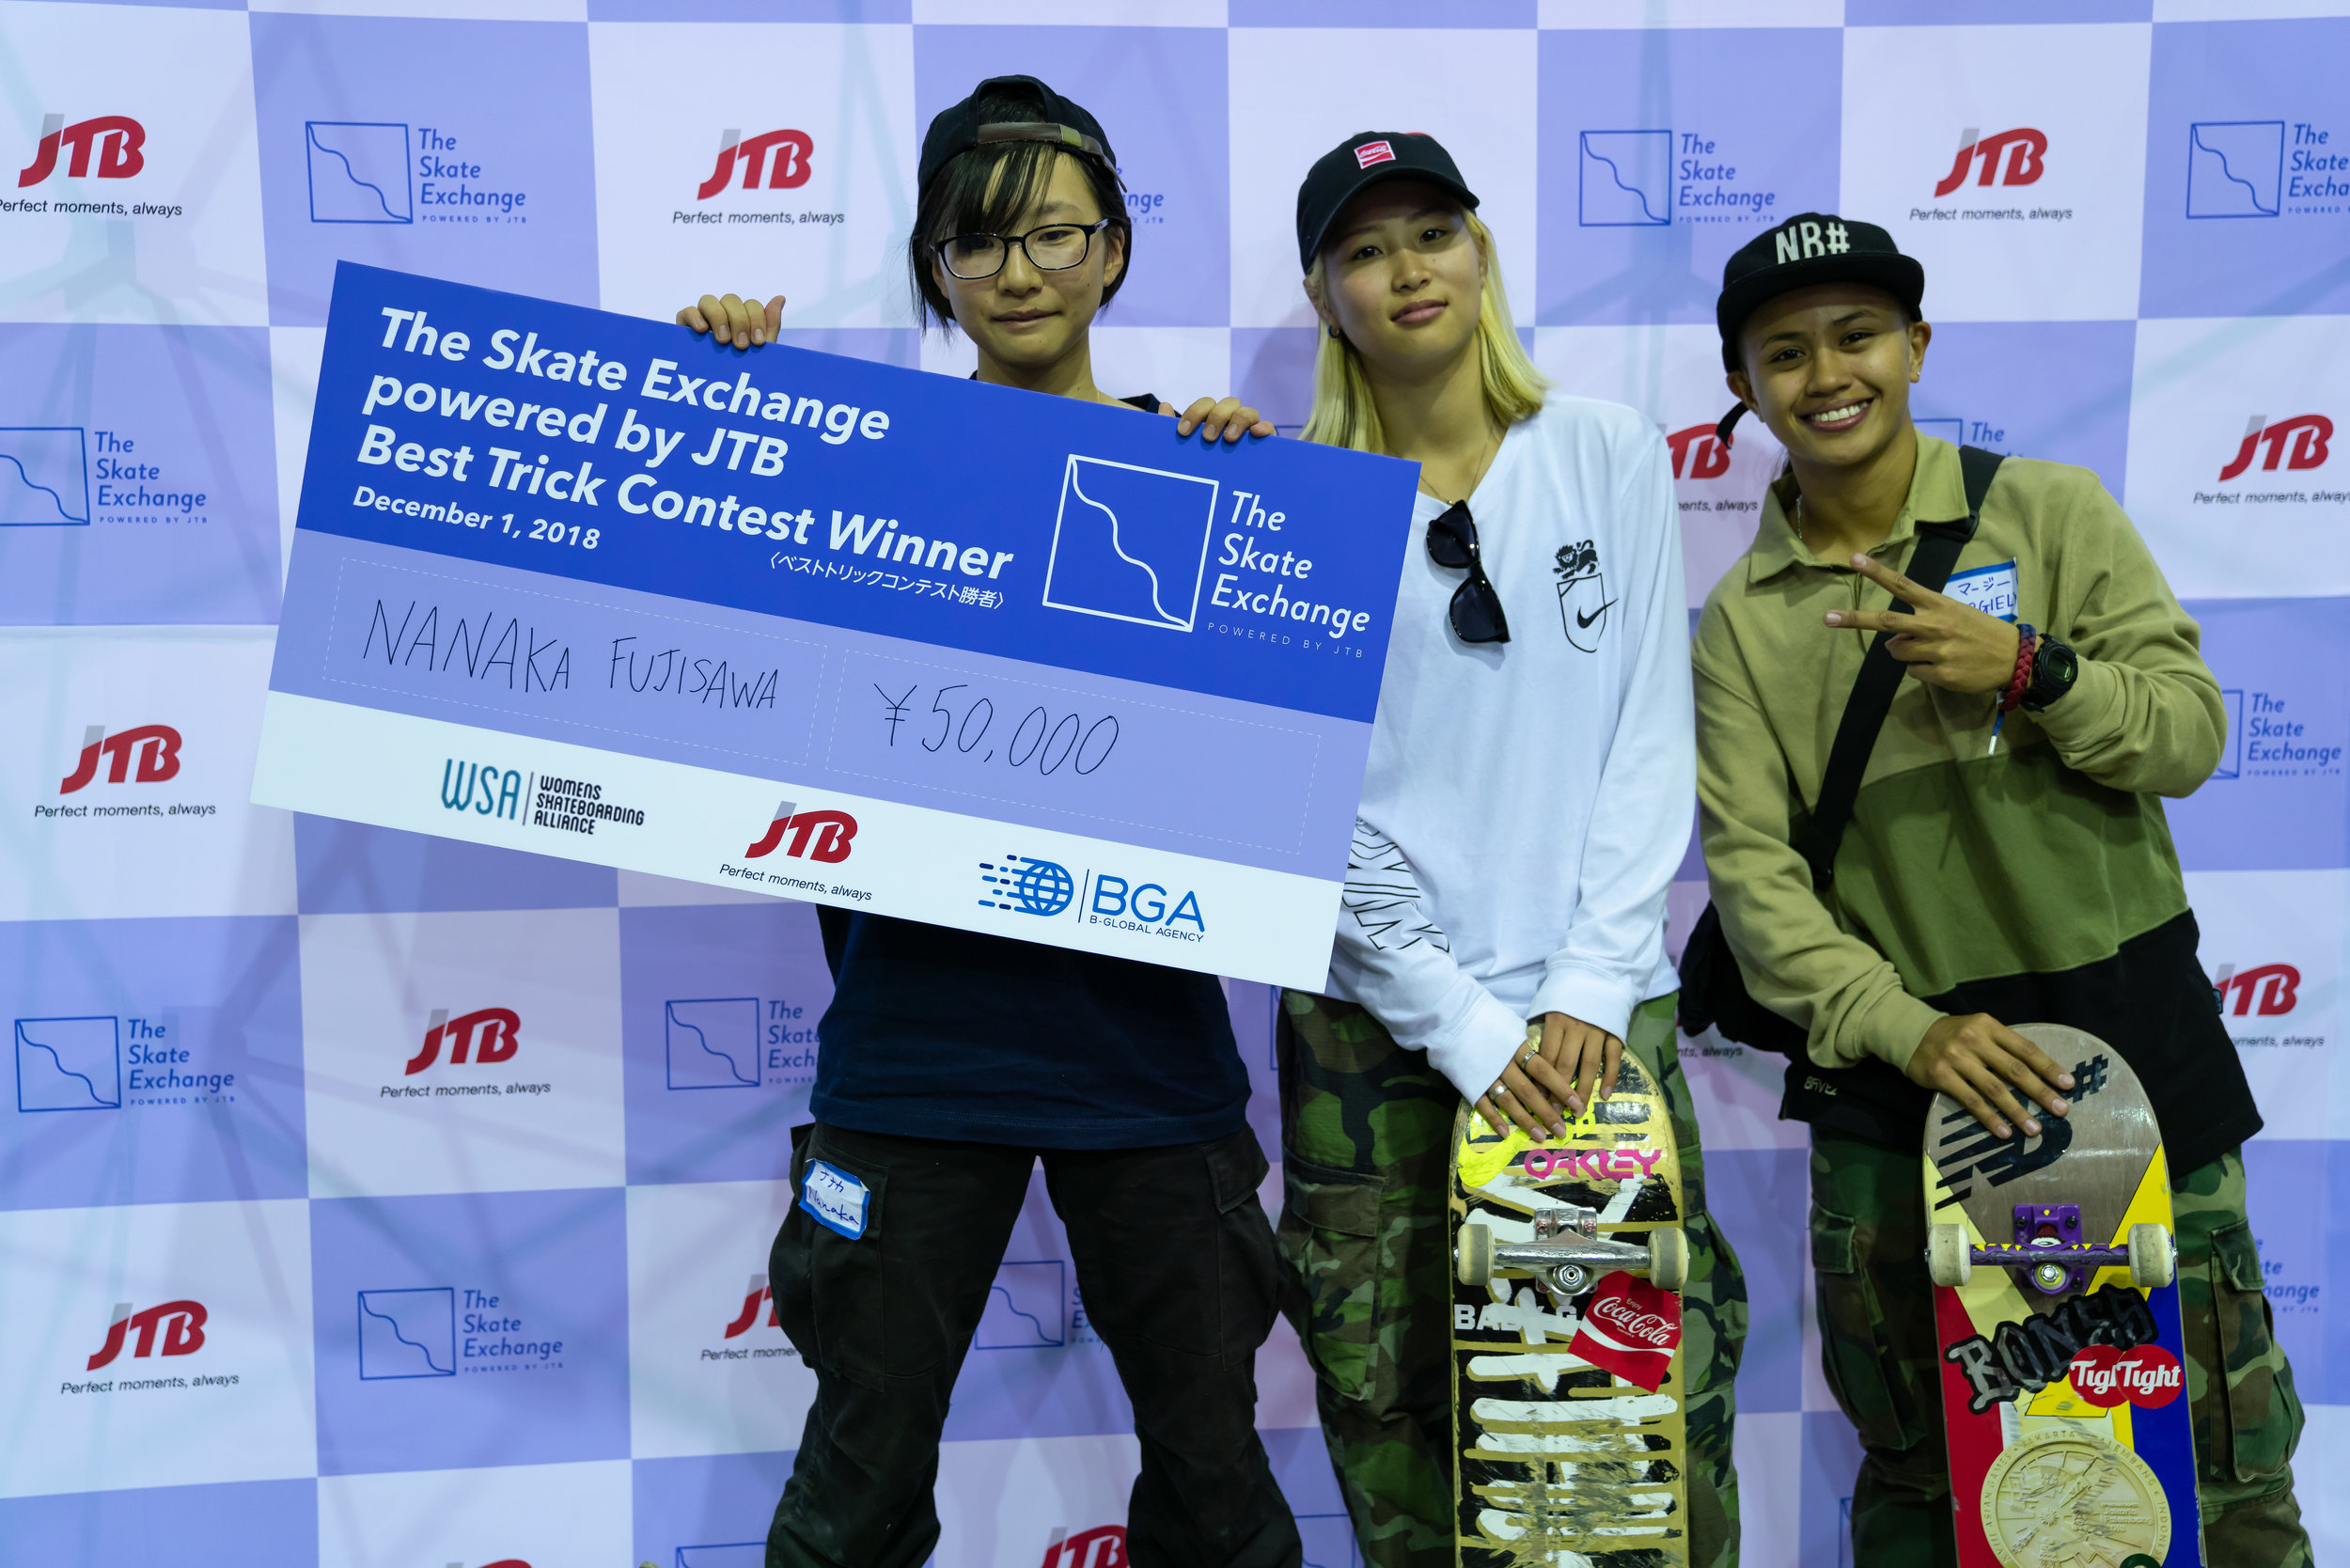 Skate Exchange3_Event Day Japan 2018_hannah bailey00010.jpg